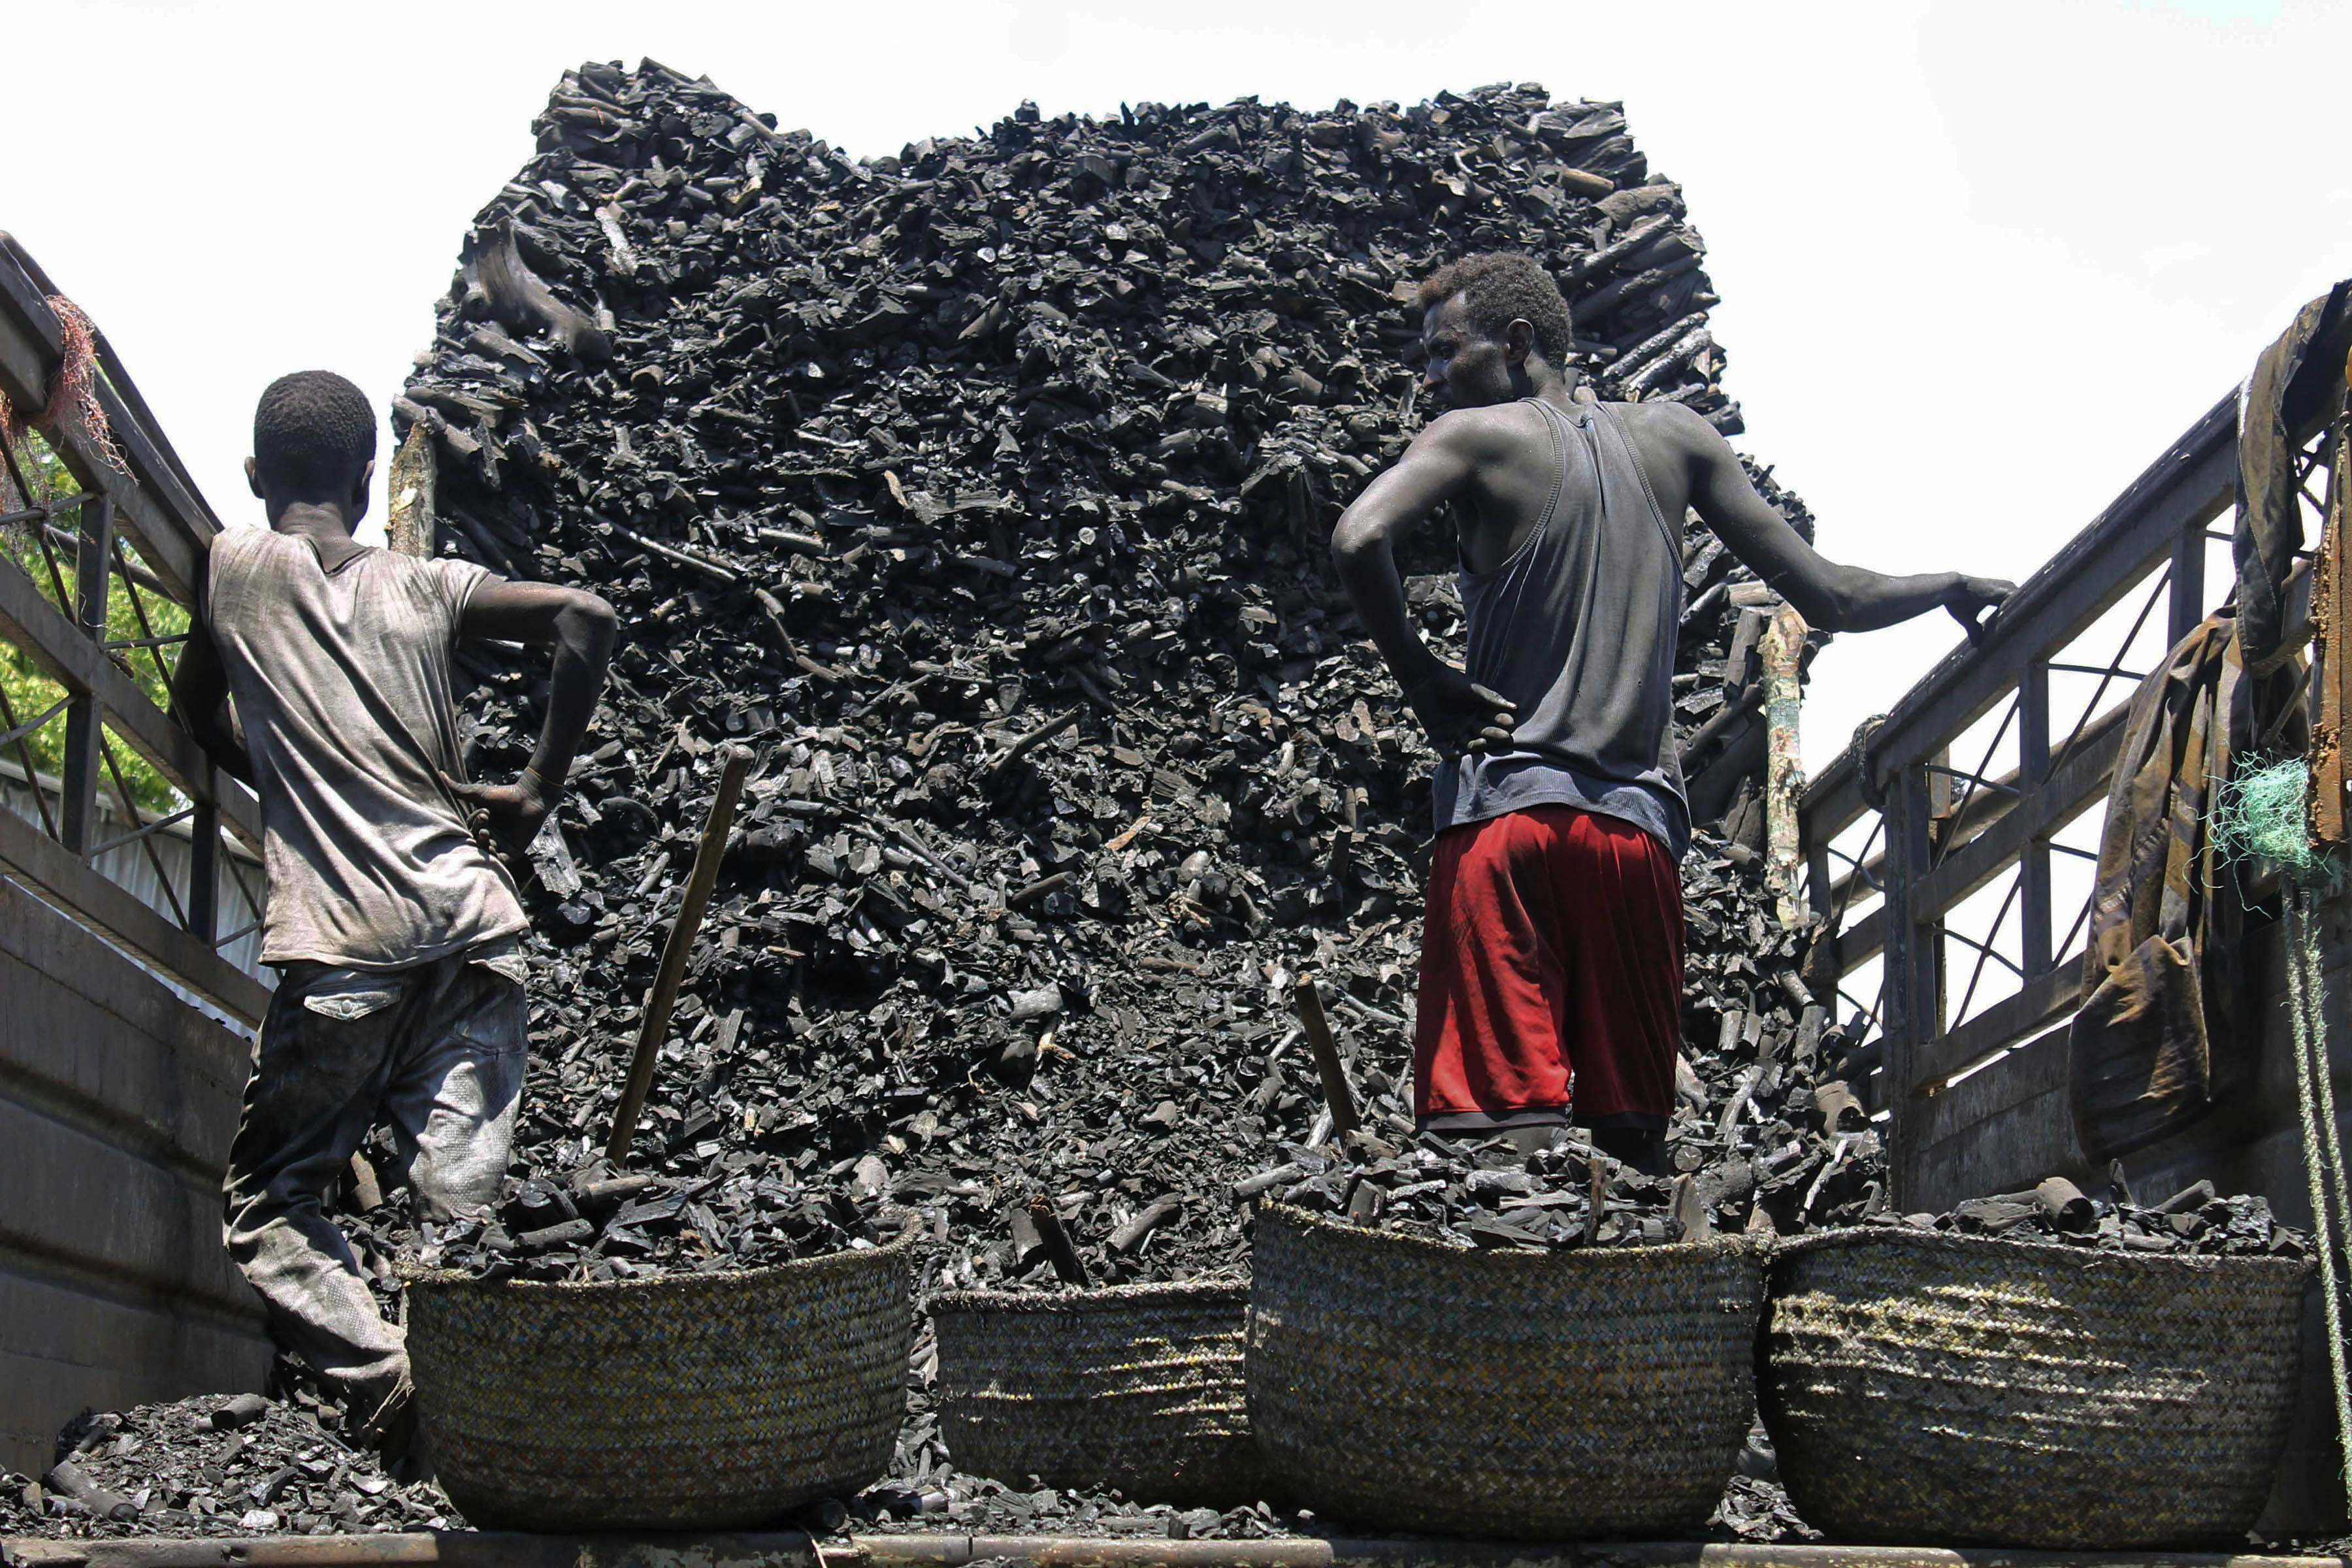 Environmentalists: Demand for Somali Charcoal Fueling Desertification, Drought